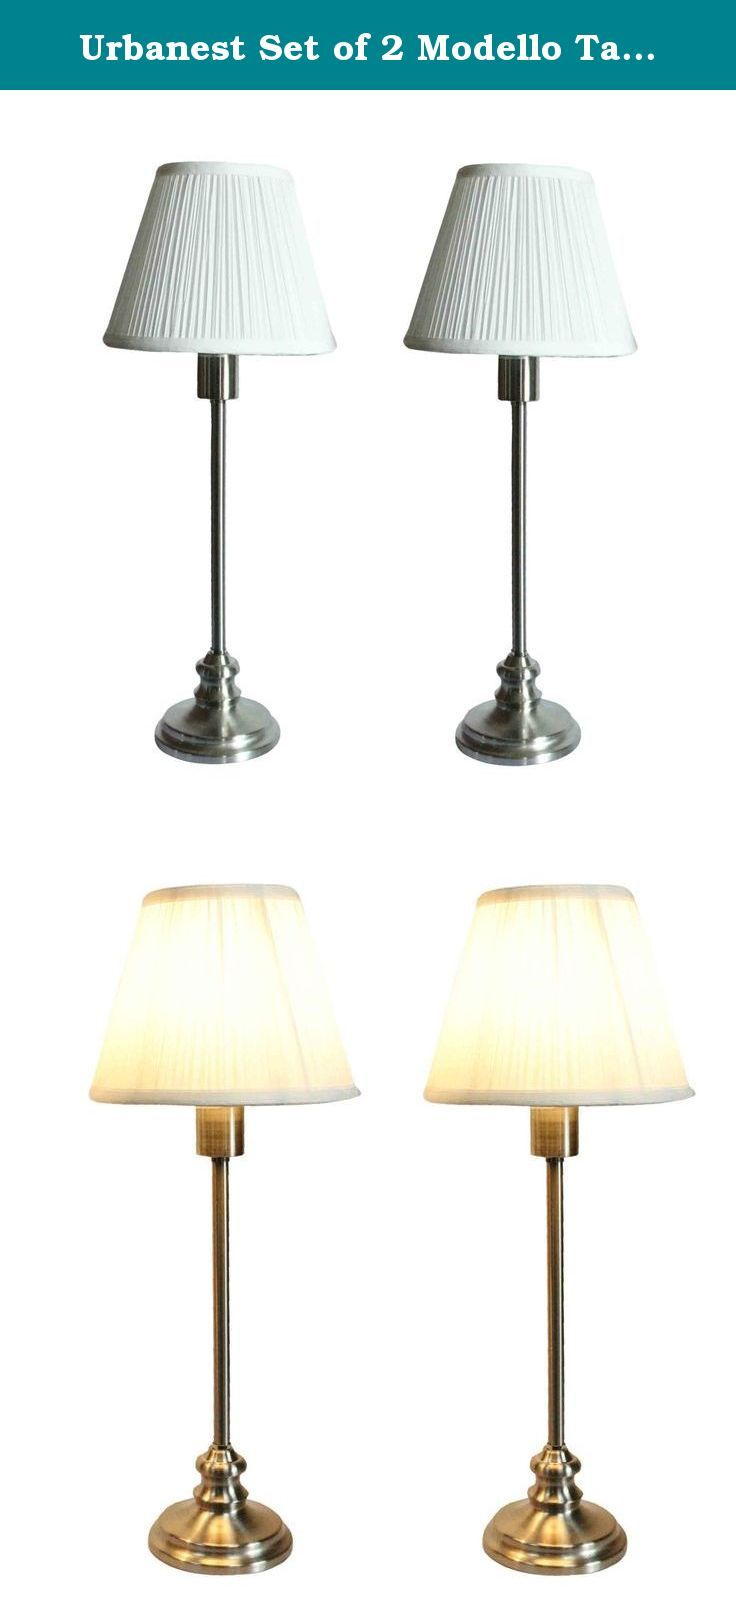 Urbanest Set of 2 Modello Table Lamps in Brushed Nickel